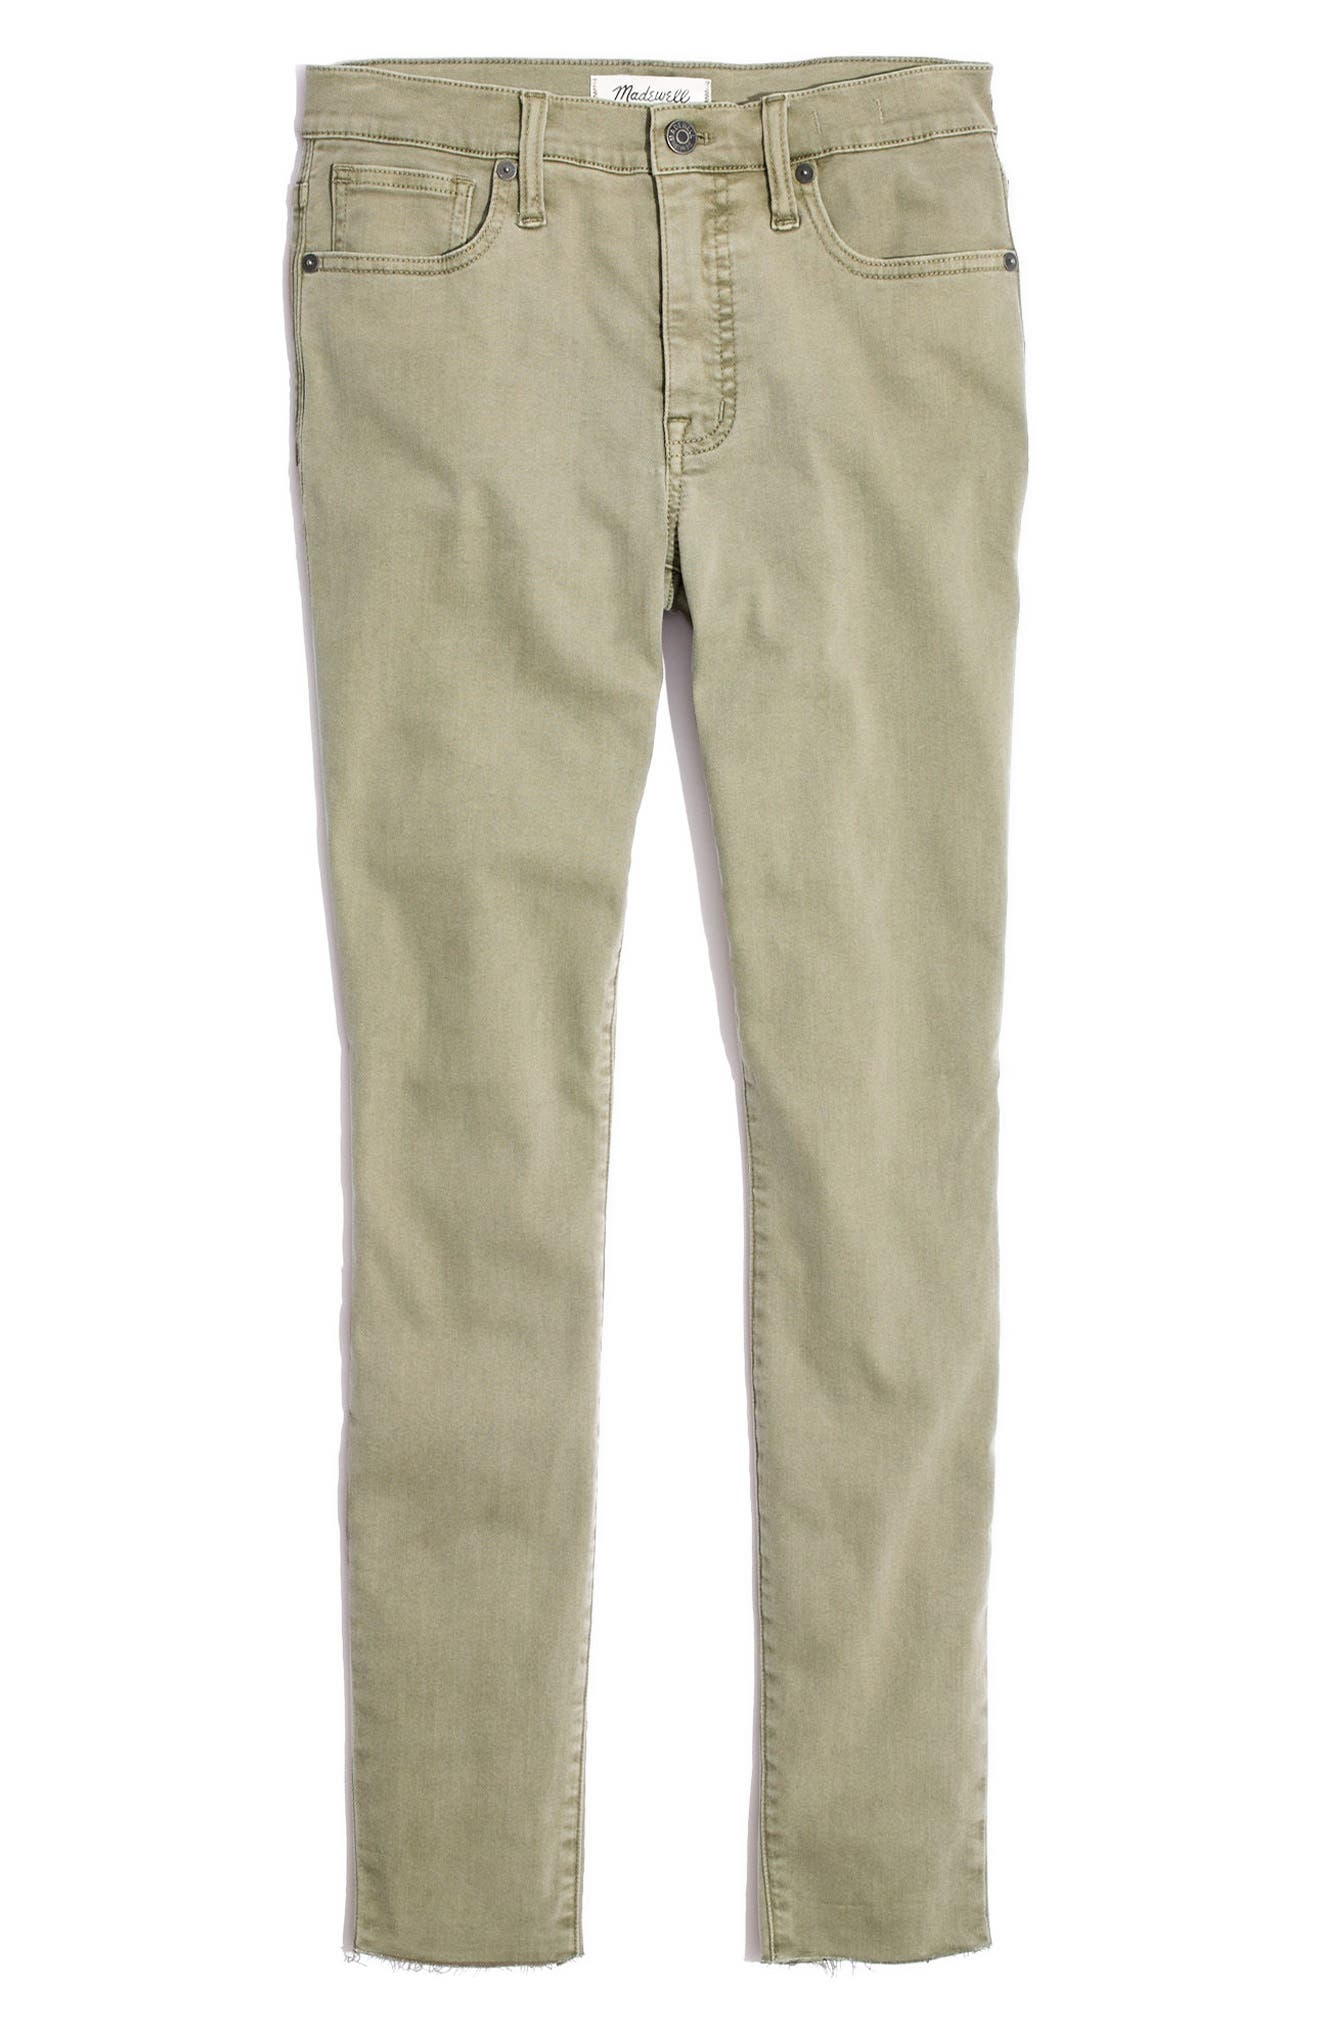 9-Inch High-Rise Skinny Jeans: Raw-Hem Garment-Dyed Edition,                             Alternate thumbnail 8, color,